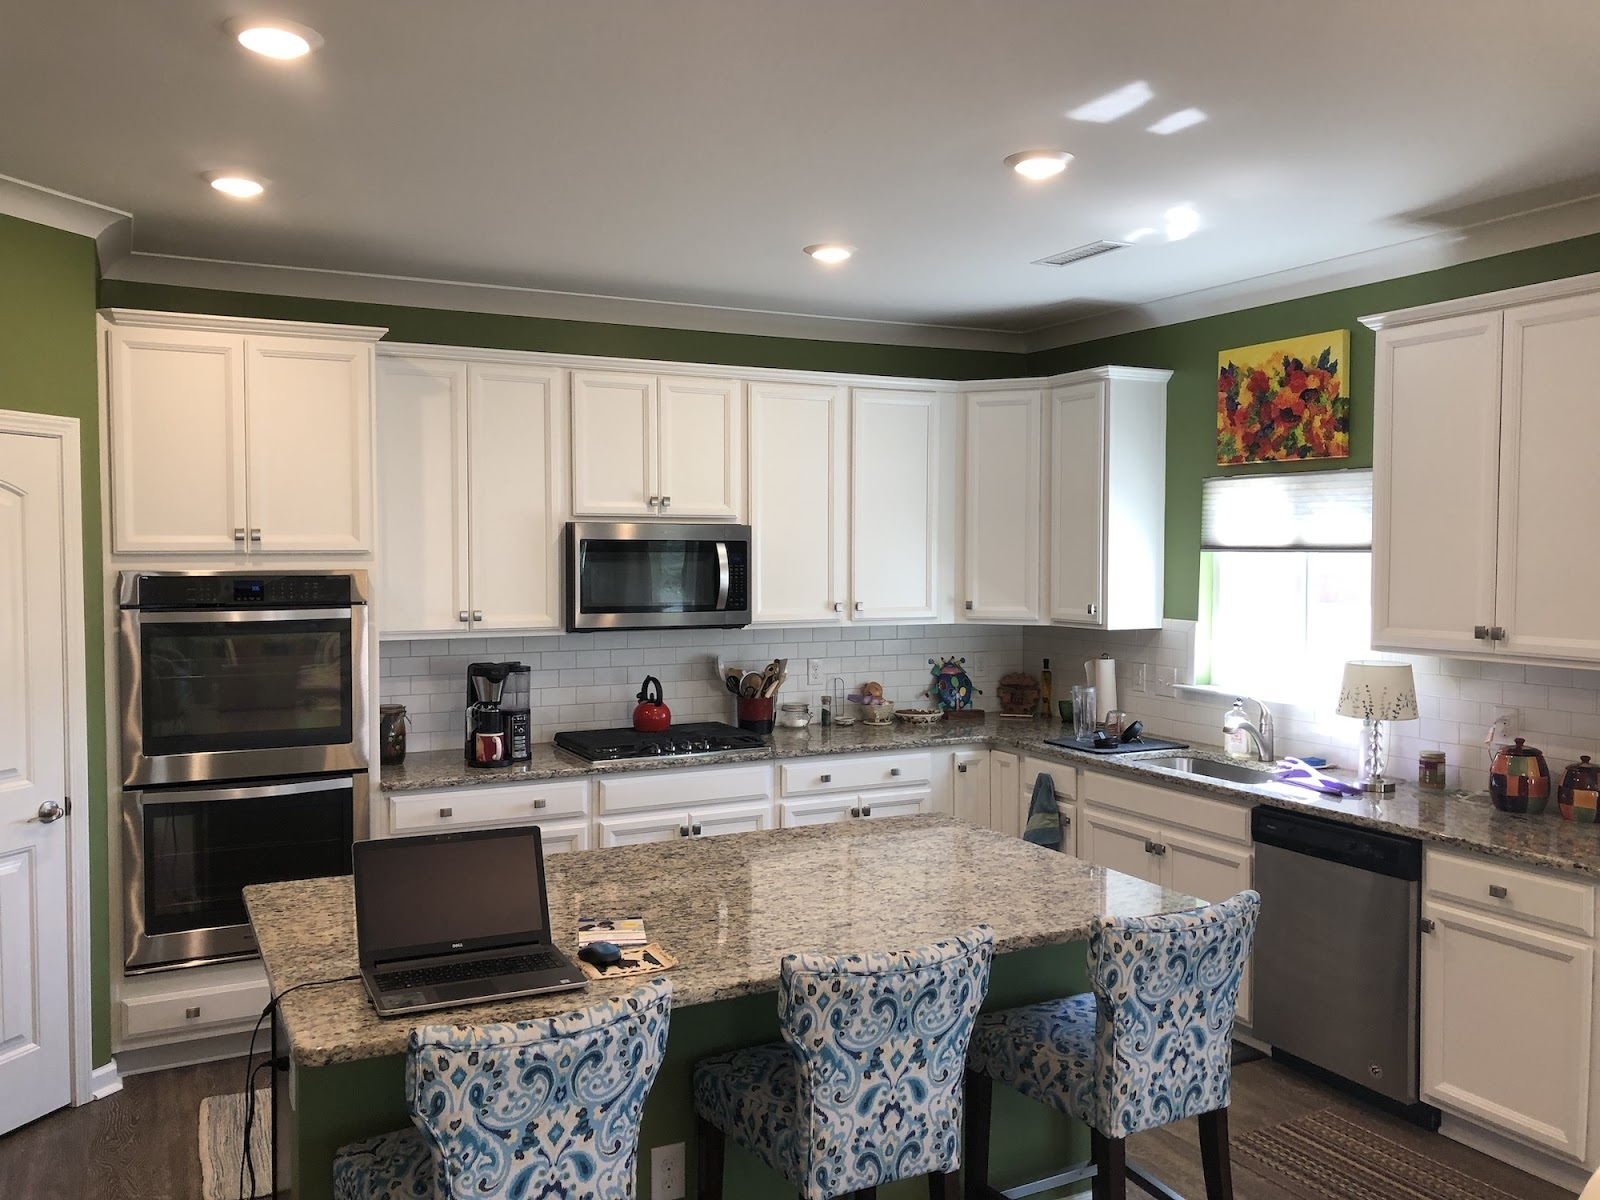 Kitchen Cabinet Painting Raleigh Nc How to Extend the Life of Your Painted Kitchen Cabinets   Anderson